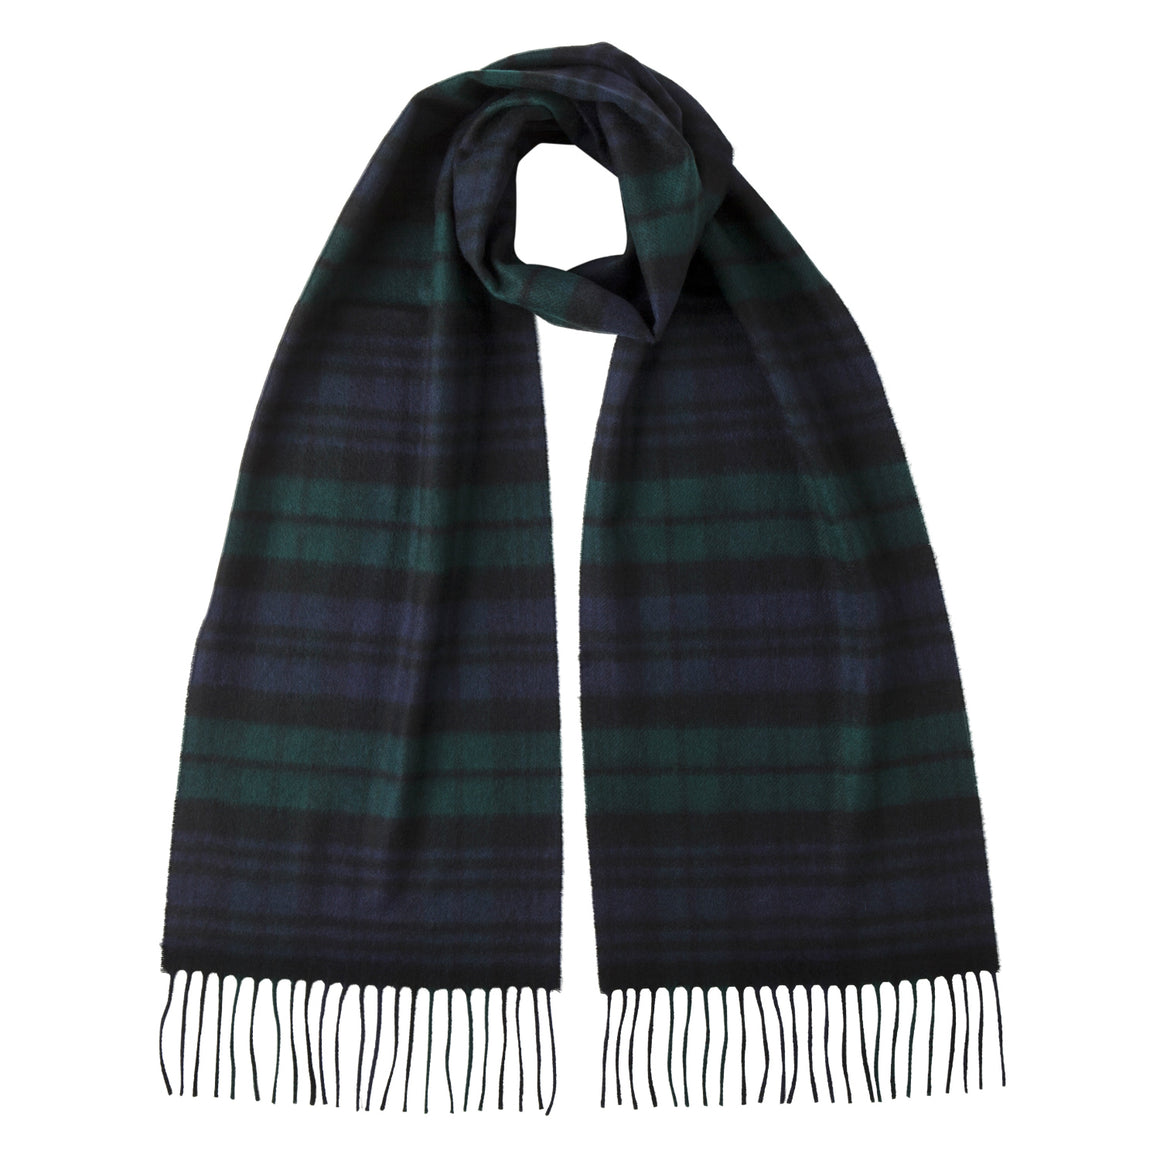 Lomond Cashmere | Black Watch | Sottish Tartan Cashmere Scarf | Shop at The Cashmere Choice | London